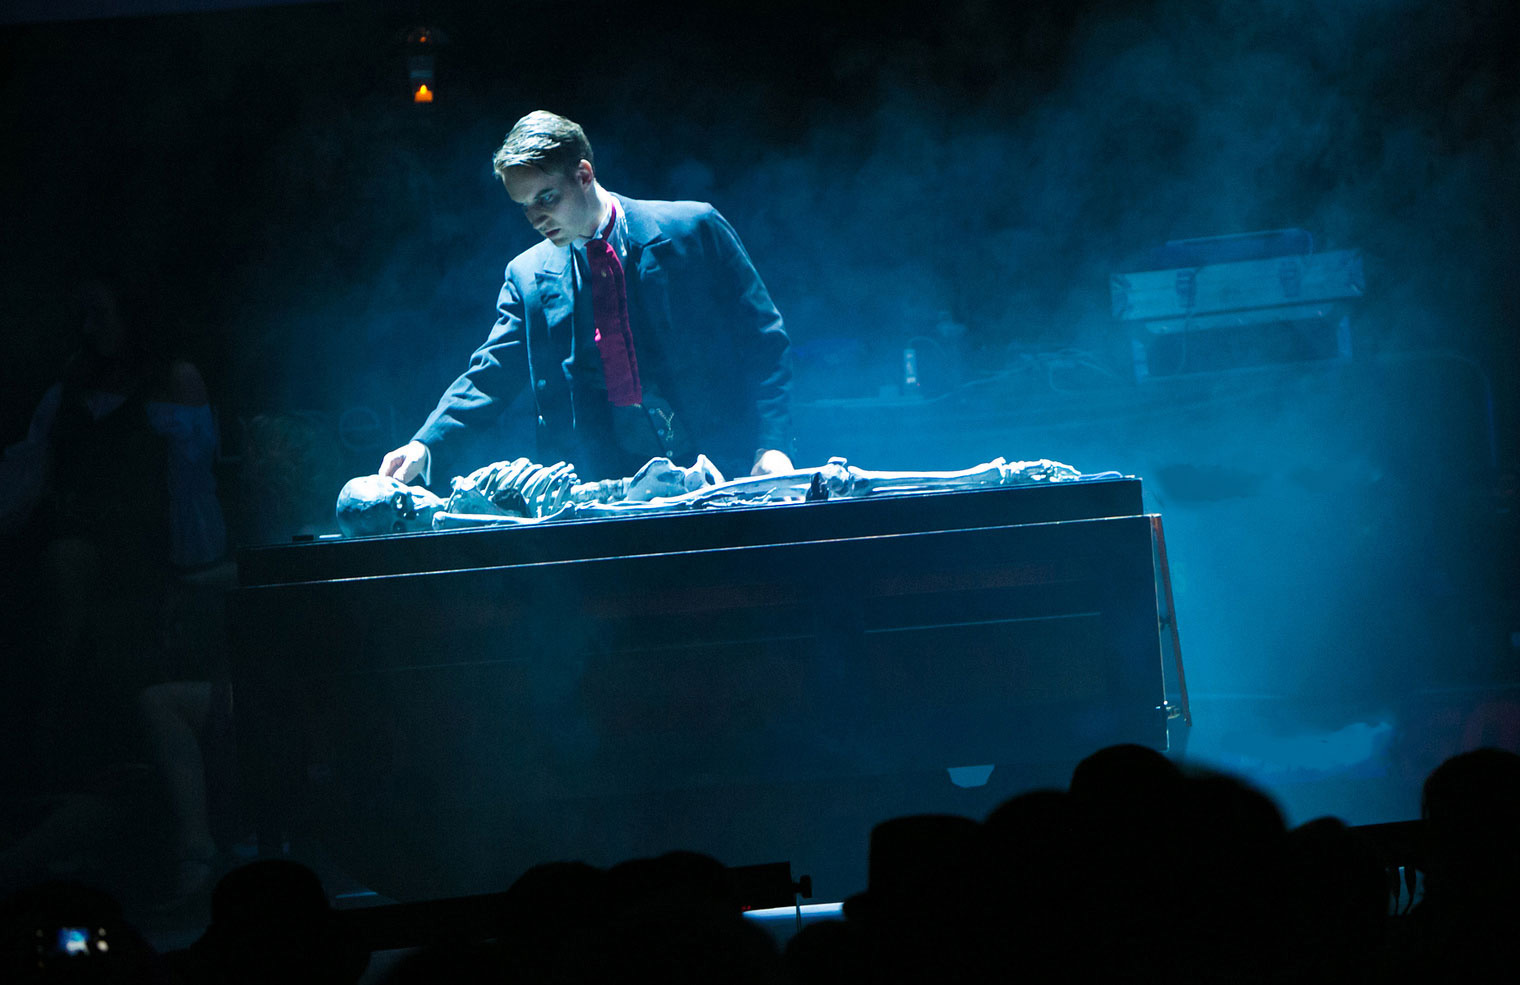 Magic consultant Christopher Howell looks down at a smokey skeleton on stage in his Jack the Ripper act.